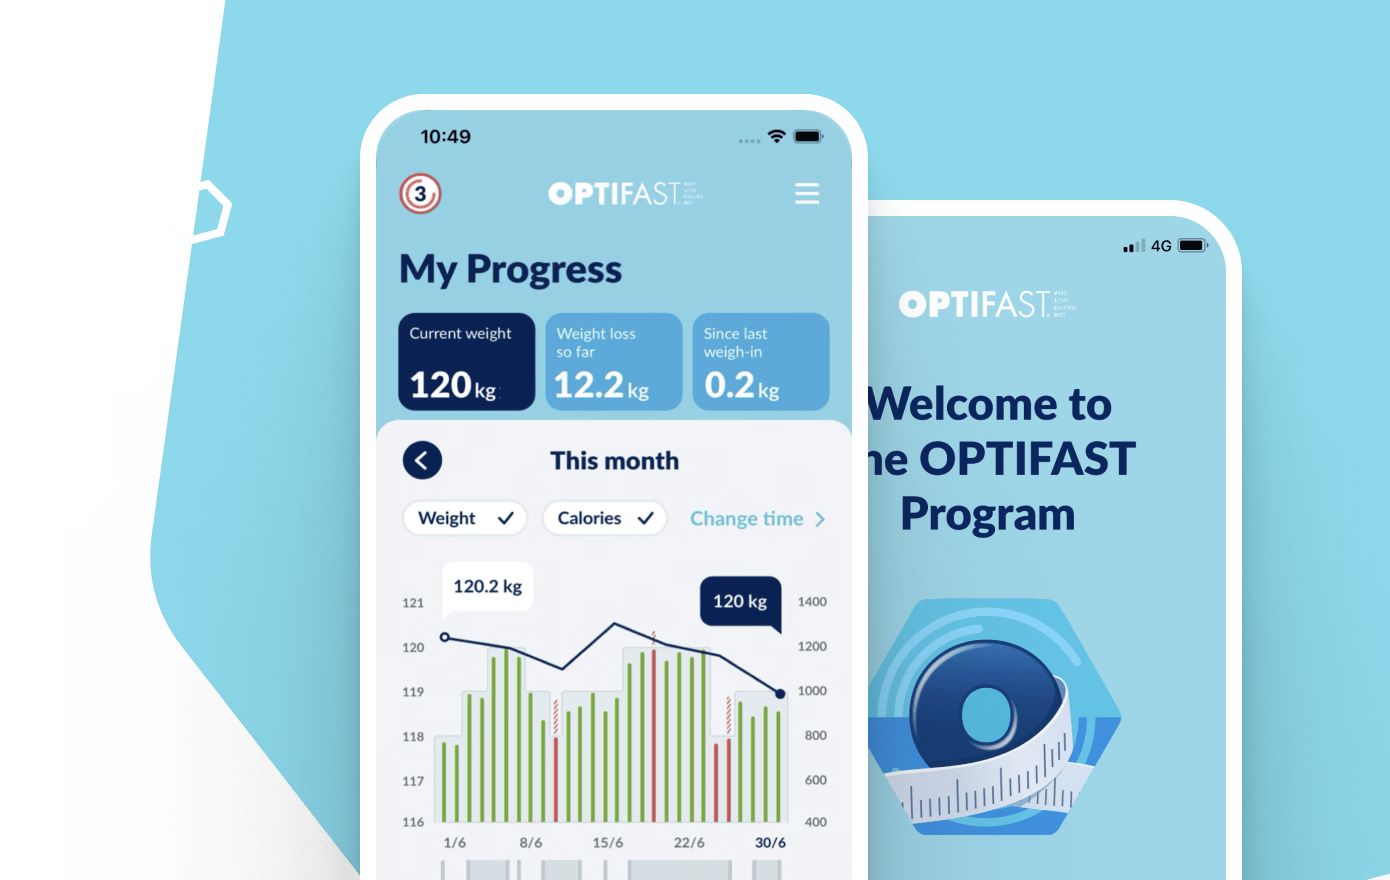 Welcome to the OPTIFAST program